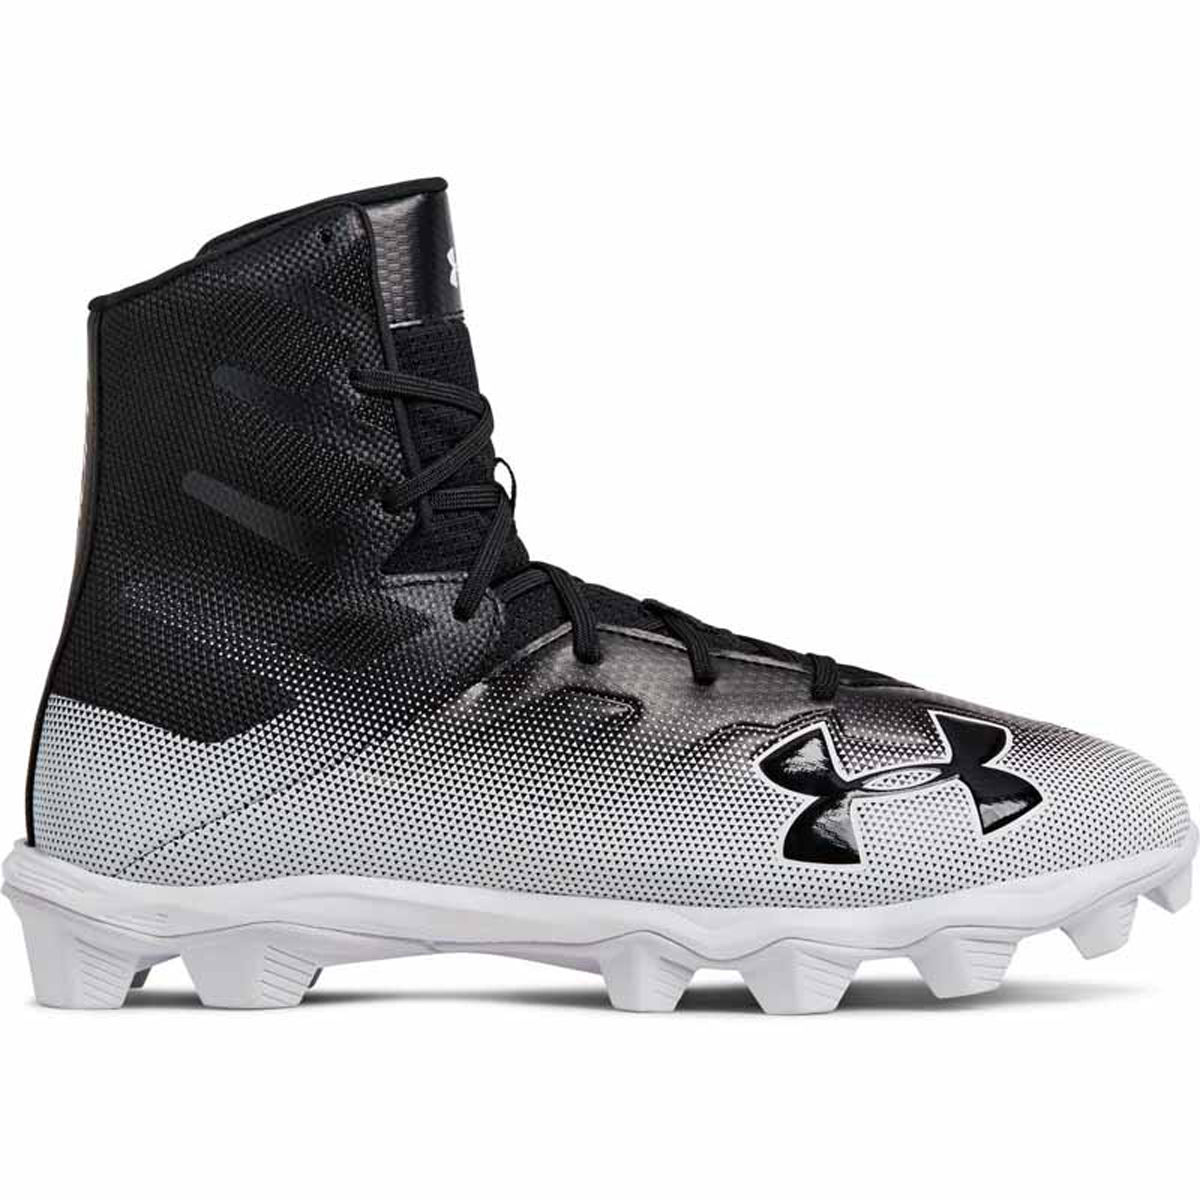 Under Armour Highlight RM Youth Football Cleat